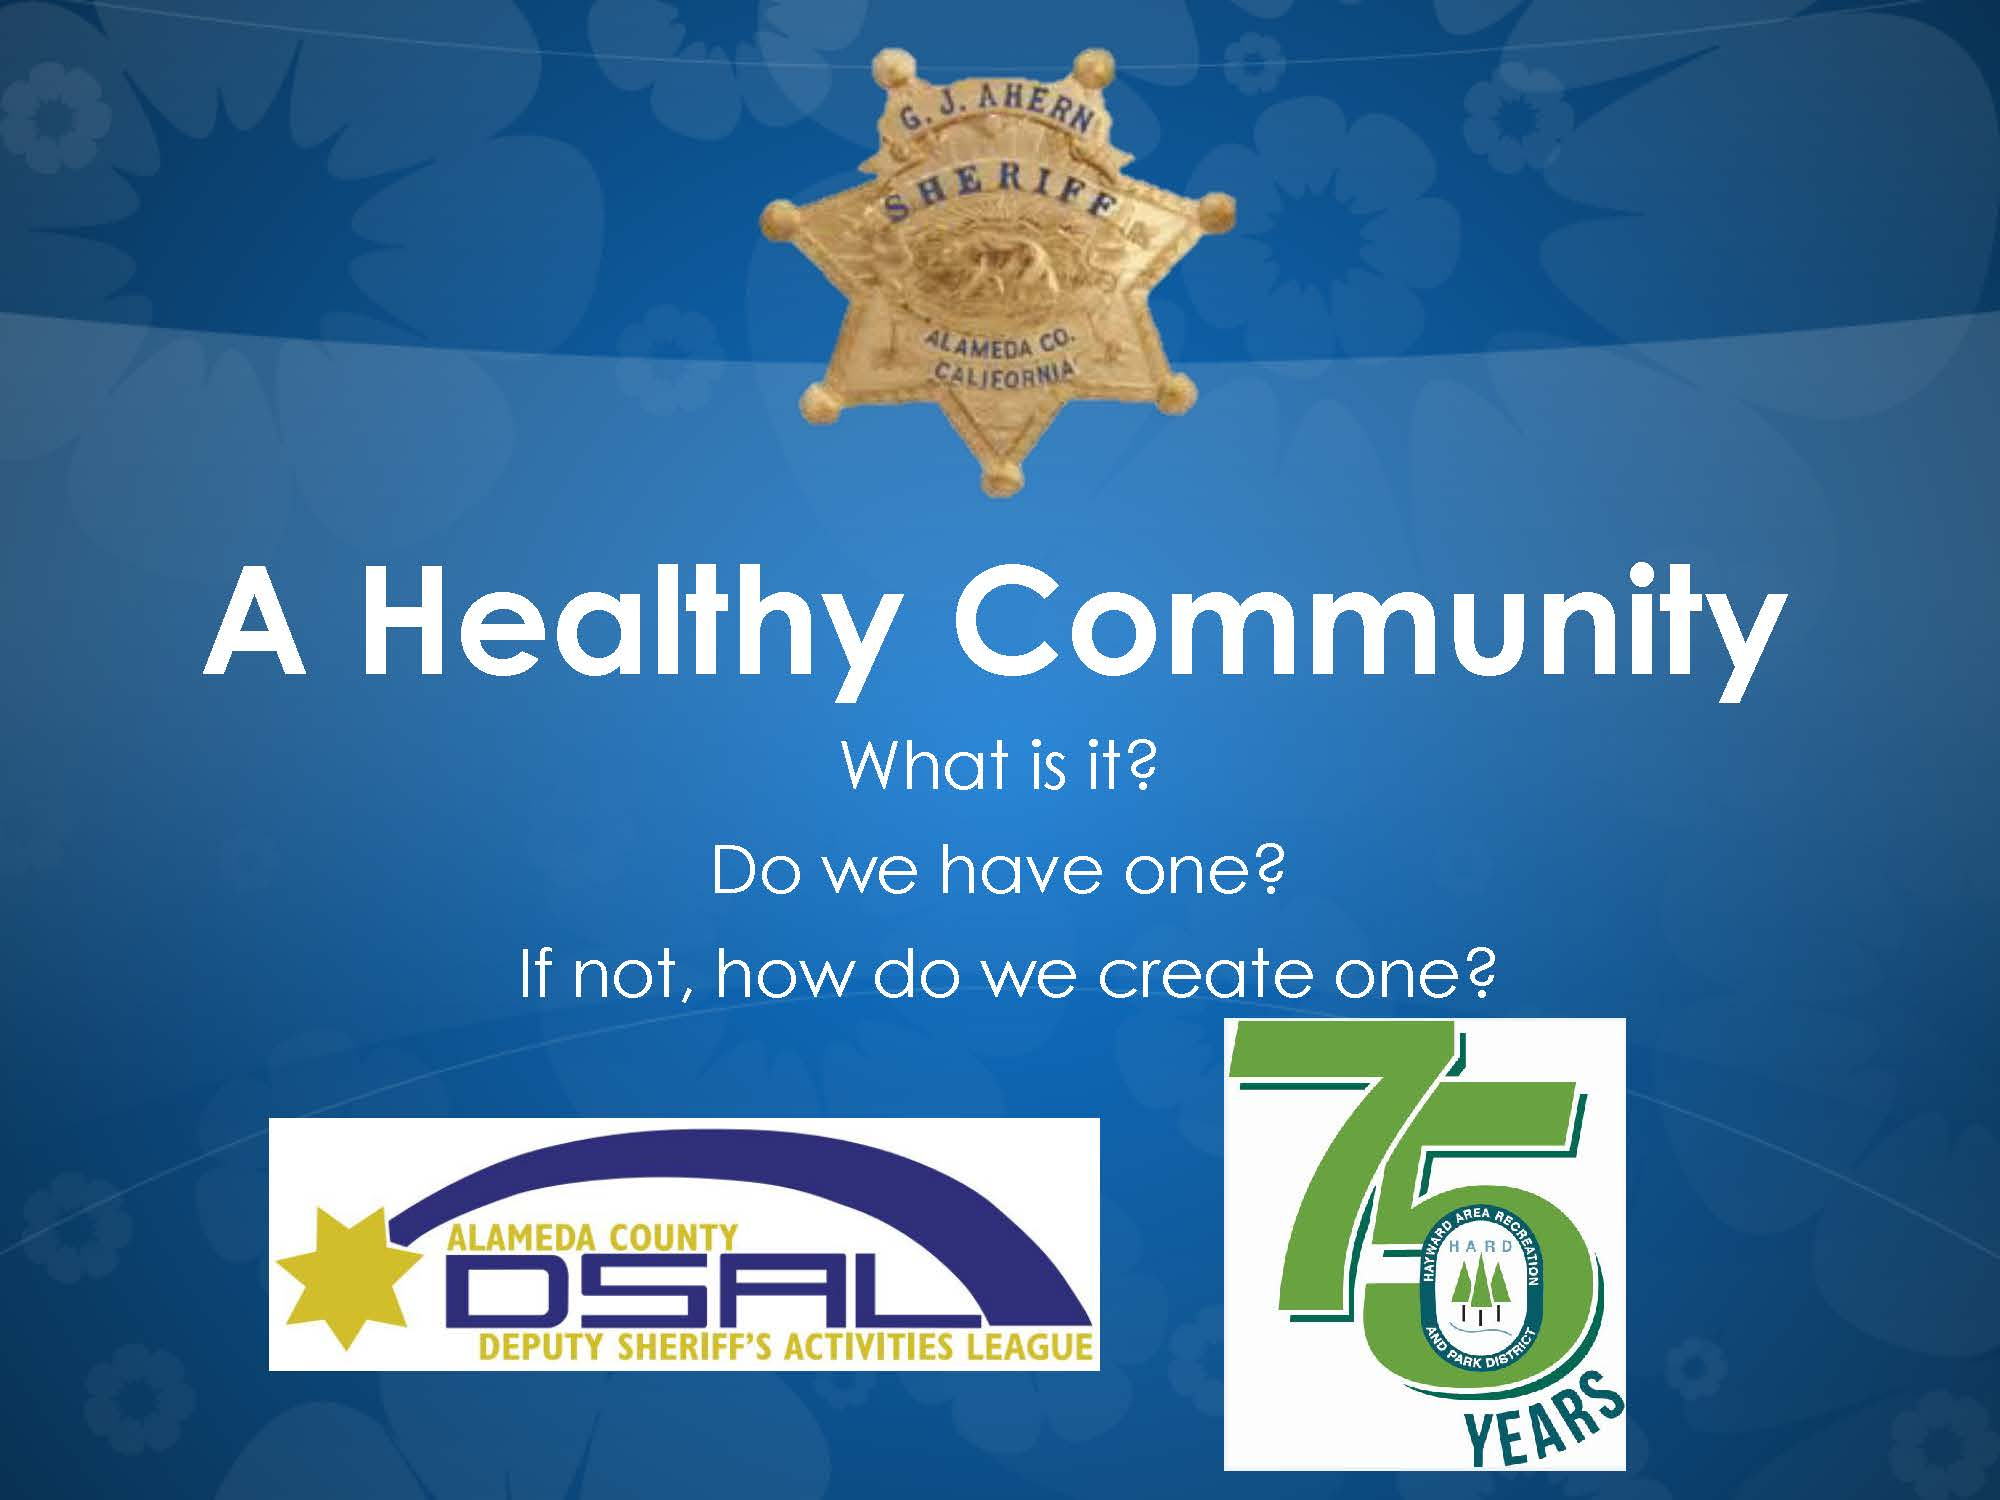 A Healthy Community presentation opening slide. What is it? Do we have one? If not, how do we create one? Alameda County Deputy Sheriff's Activities League